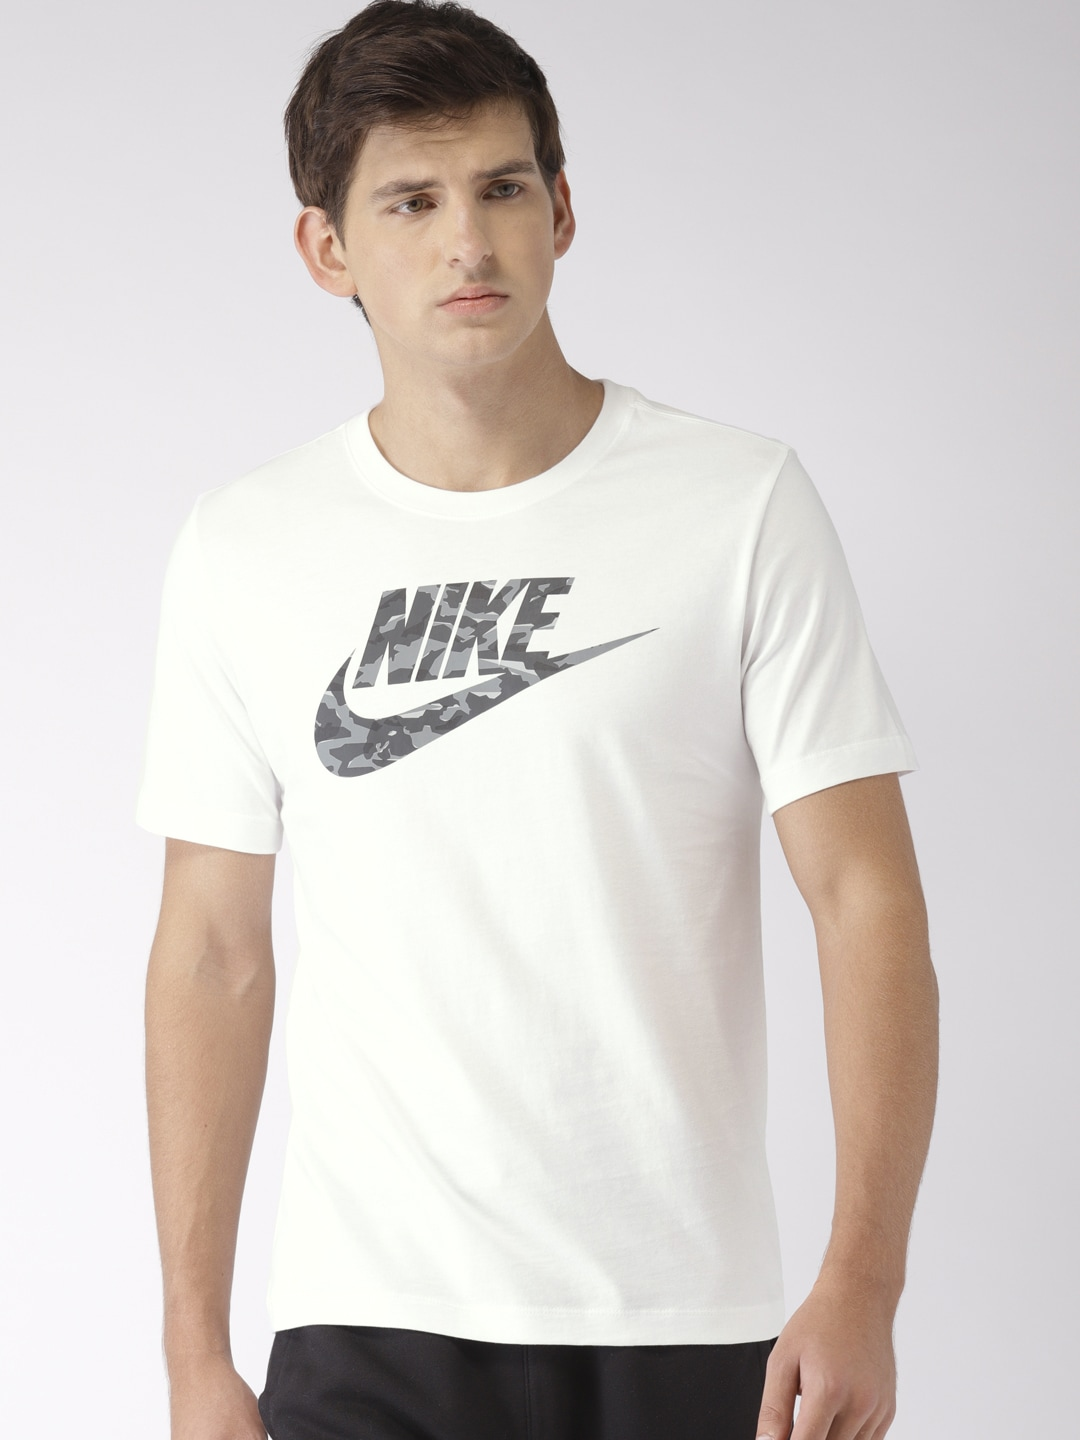 bc40e16318e7 Nike - Shop for Nike Apparels Online in India